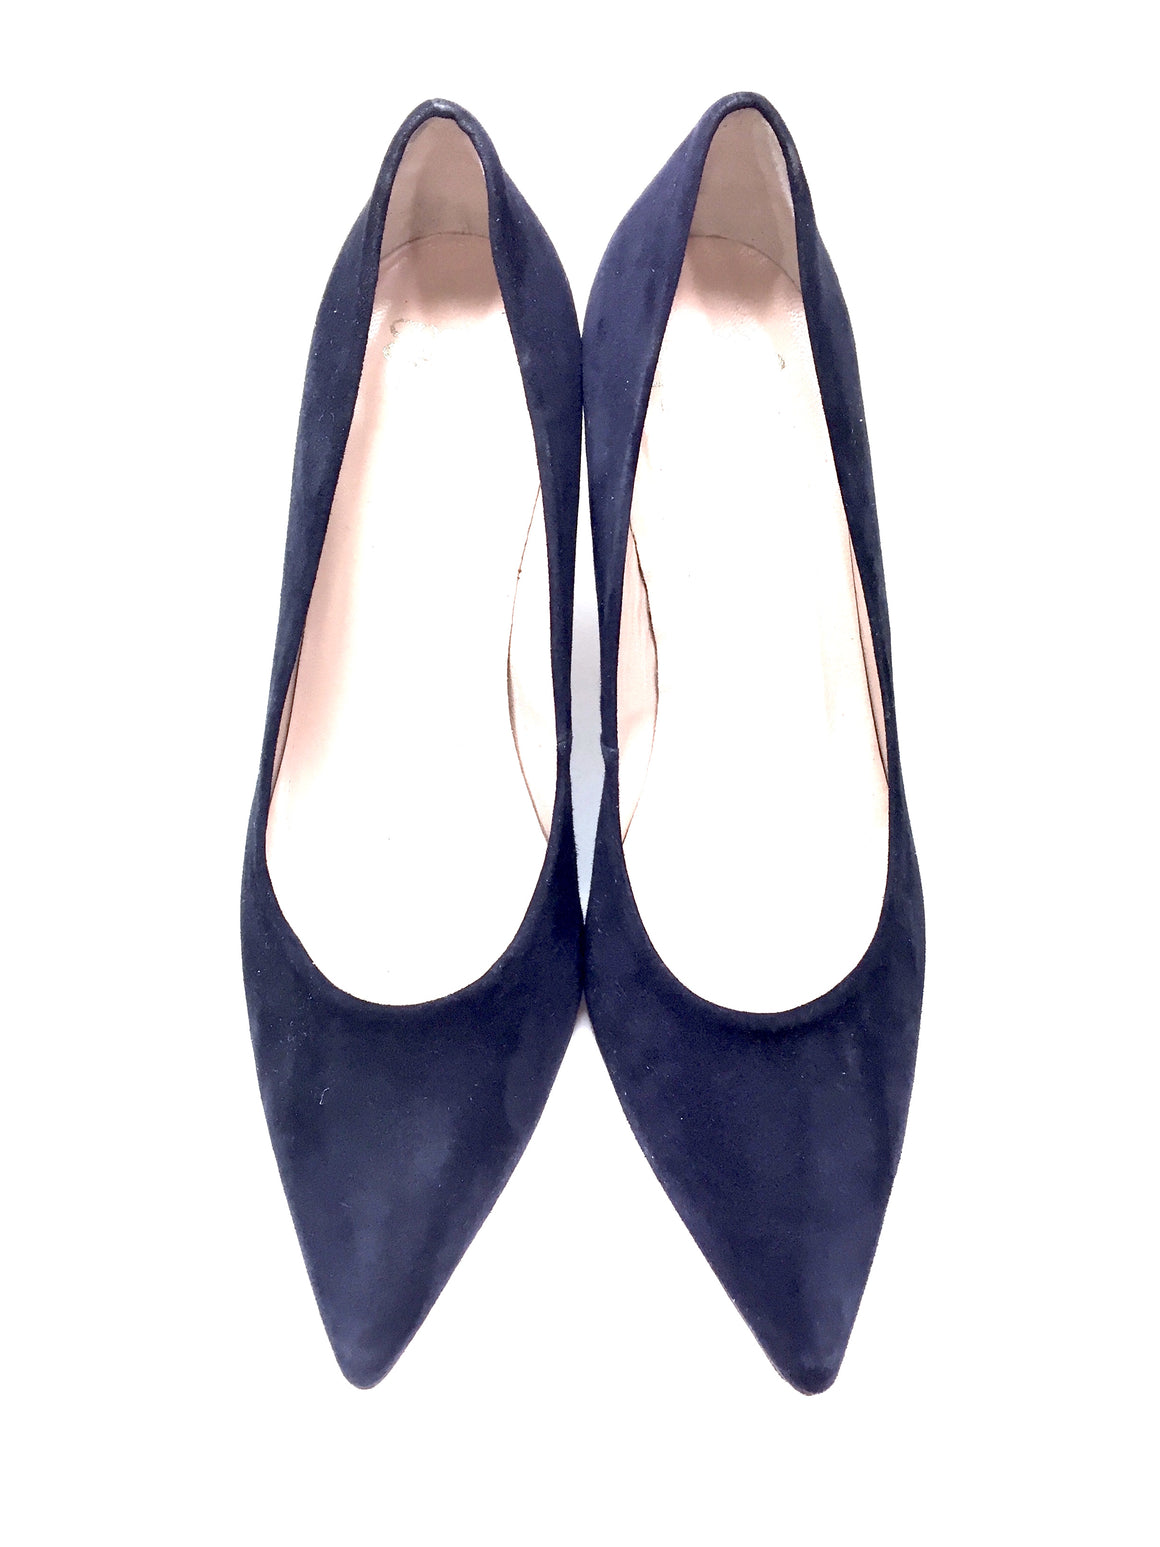 ANDRE ASSOUS Navy Suede Heel Pumps Shoes Size 7